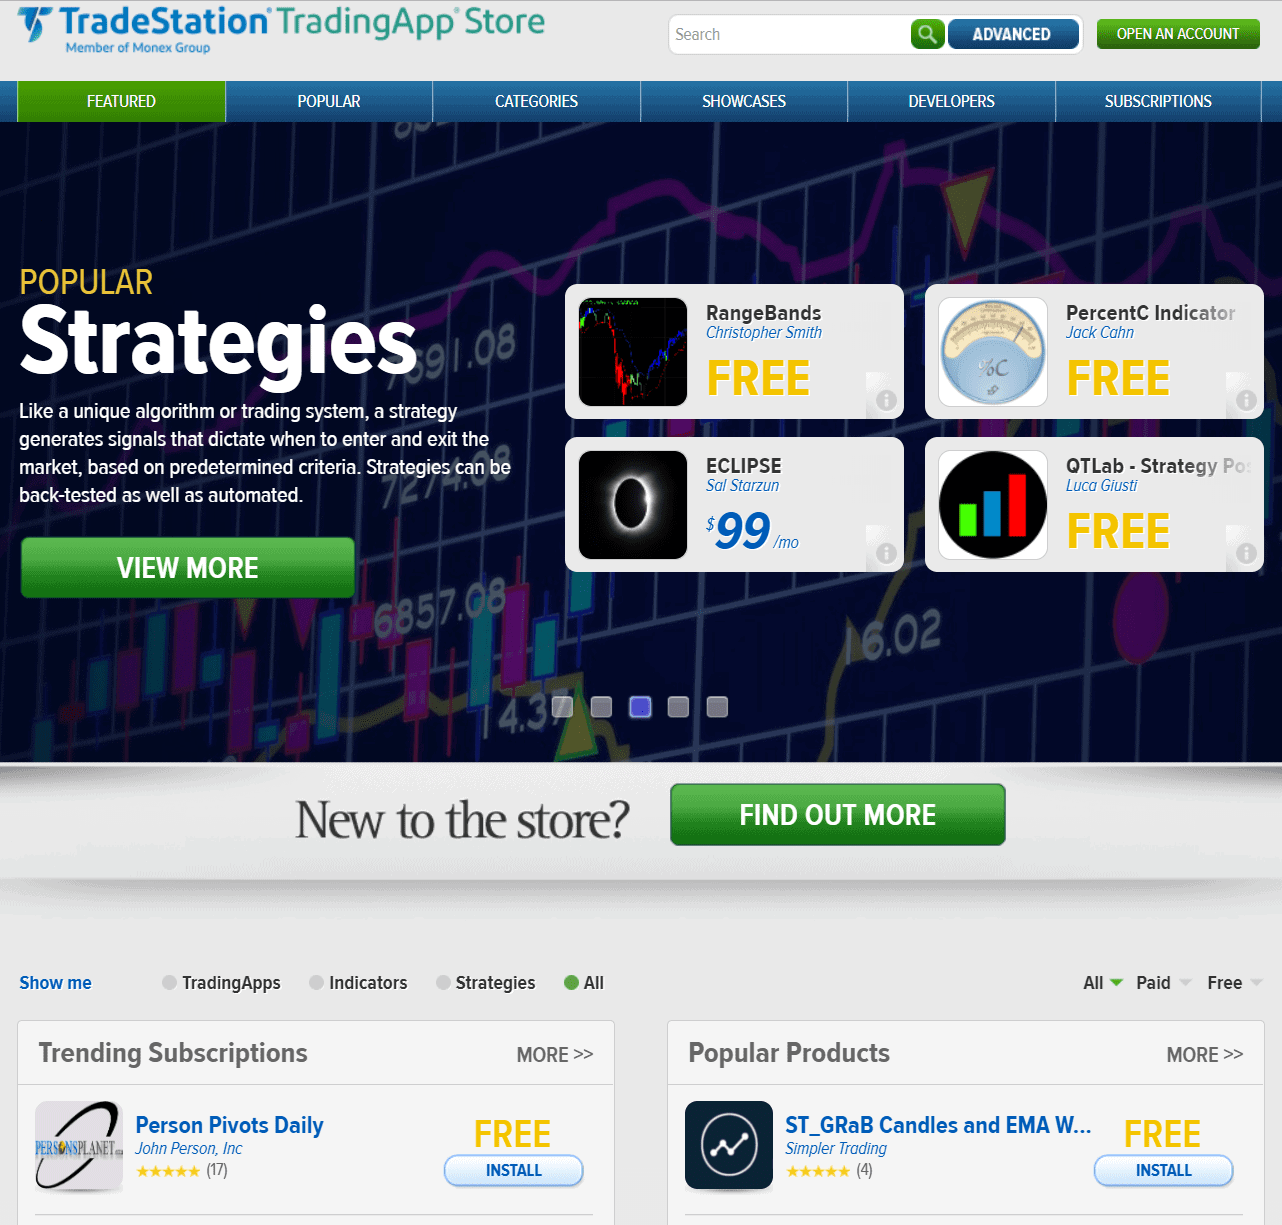 Trade Station Trading App Store